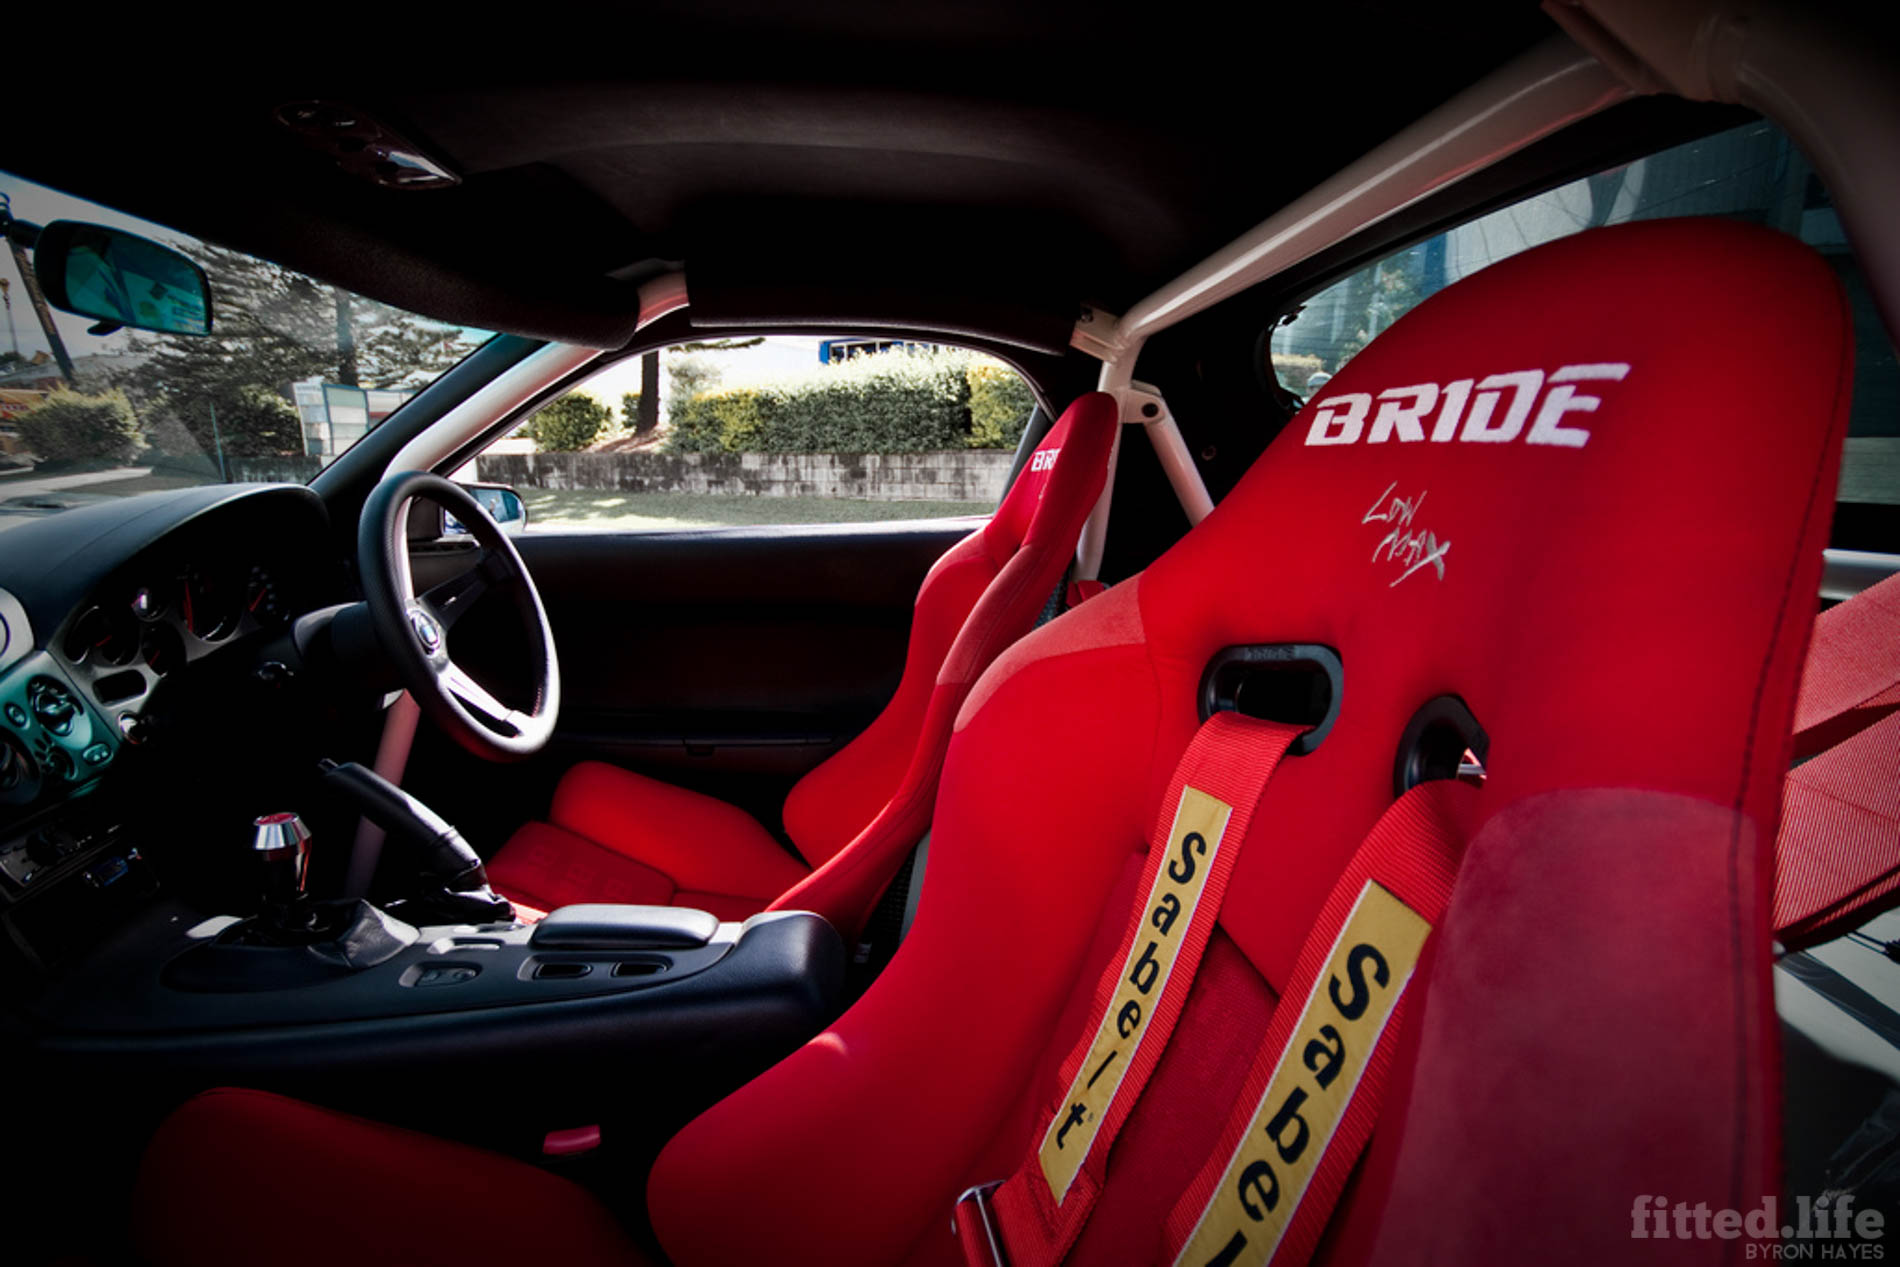 byron hayes fd rx 7 fitted life (6)